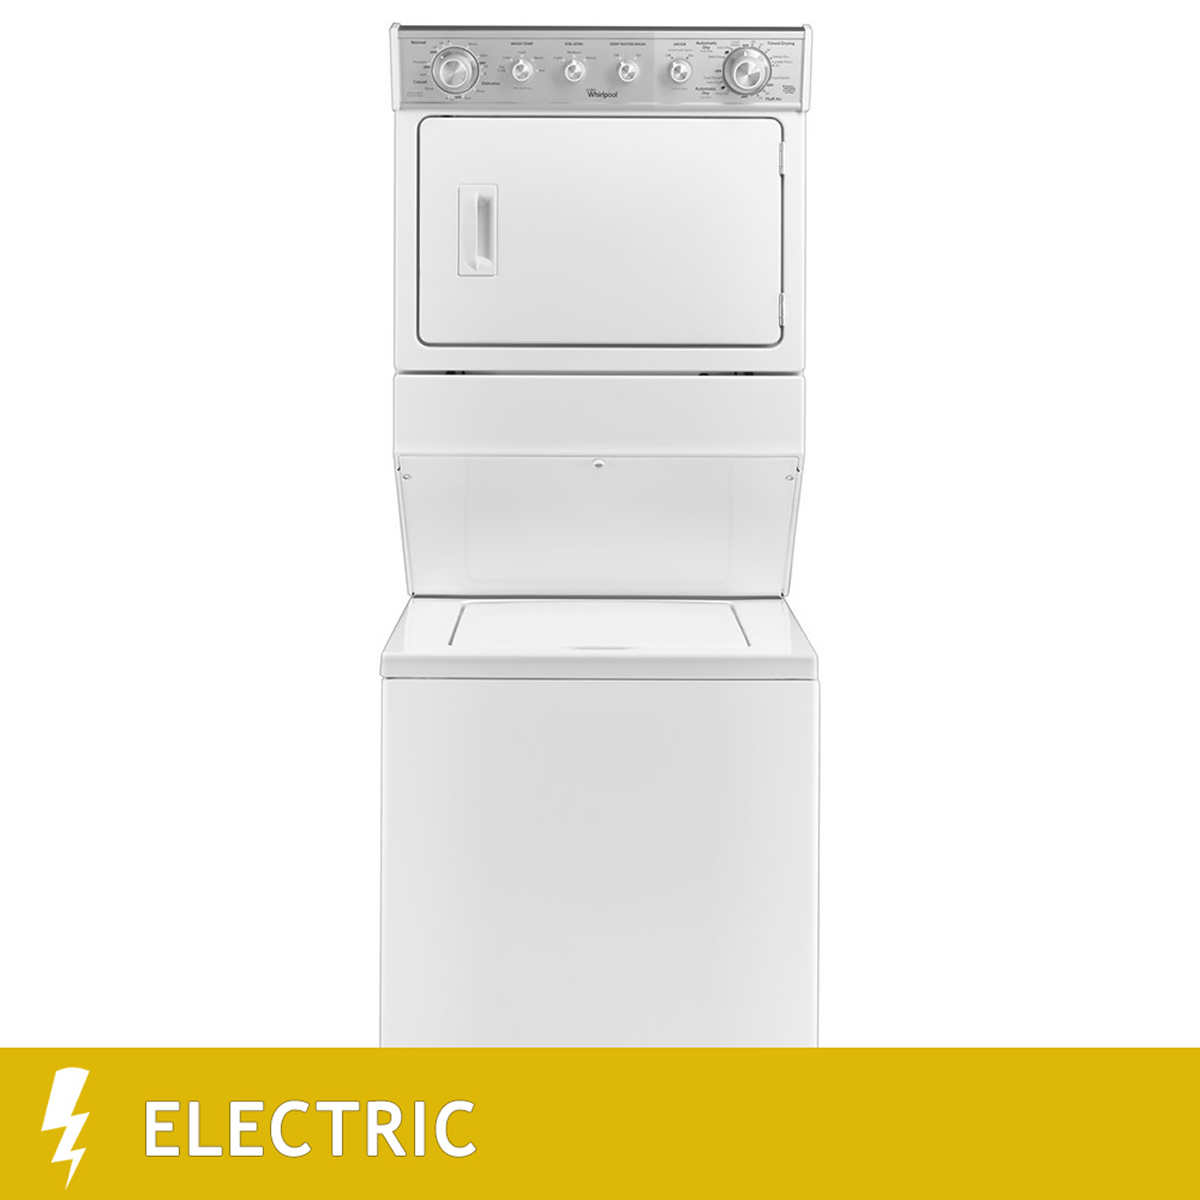 Whirlpool white ice costco - Whirlpool 2 5cuft Capacity Washer And 5 9cuft Capacity Electric Dryer Combination In White